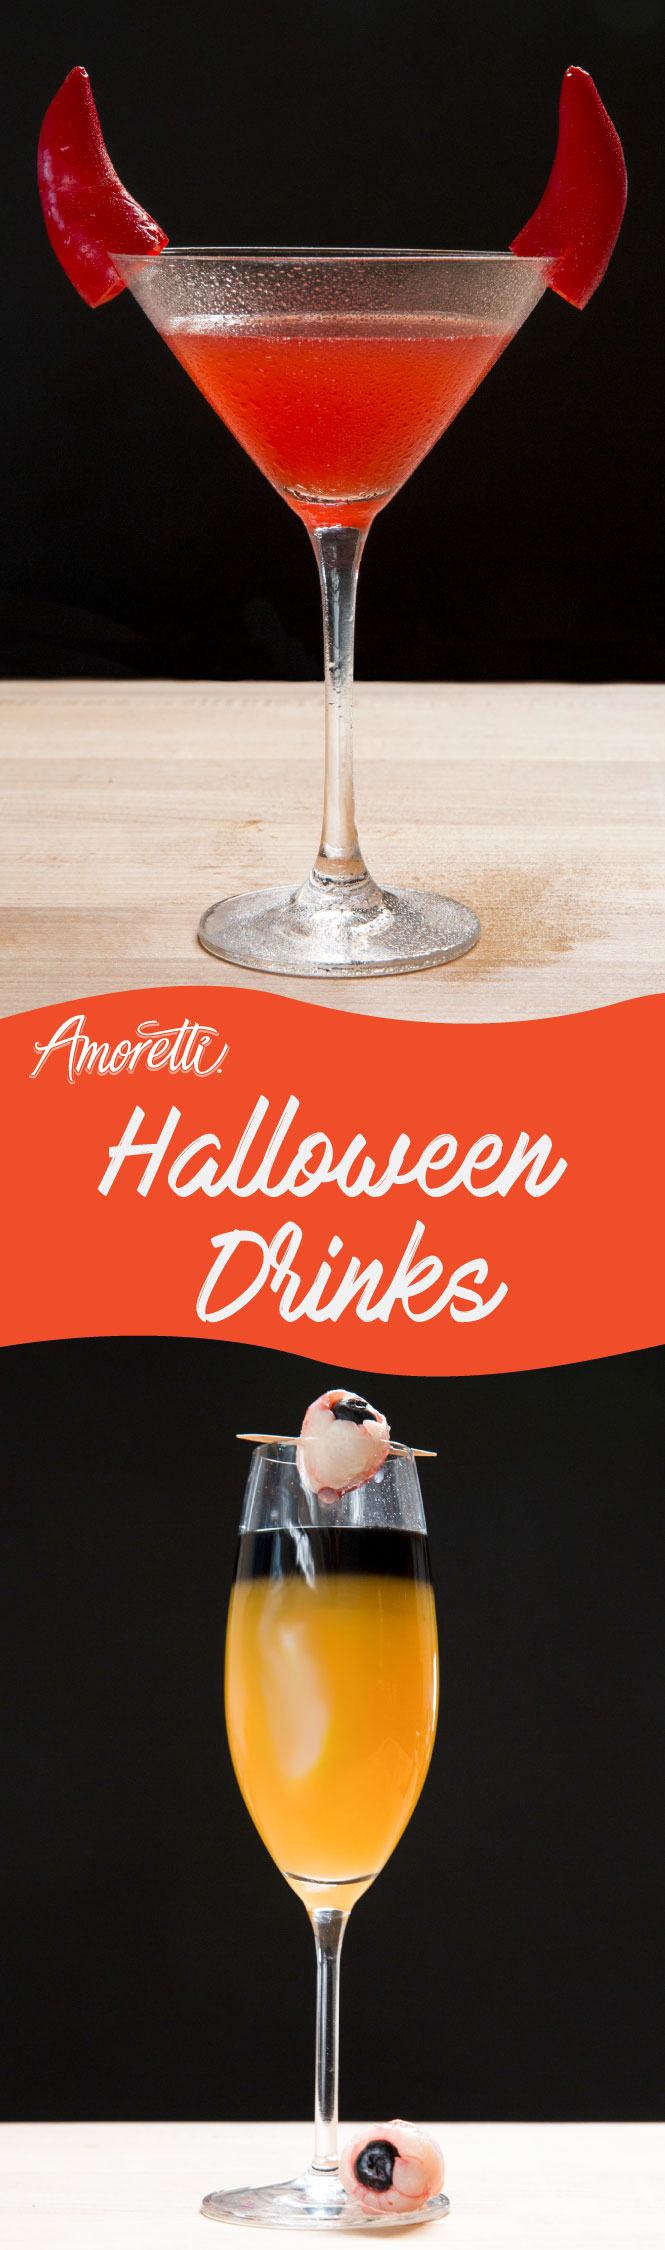 Some scary and creative cocktails for Halloween!